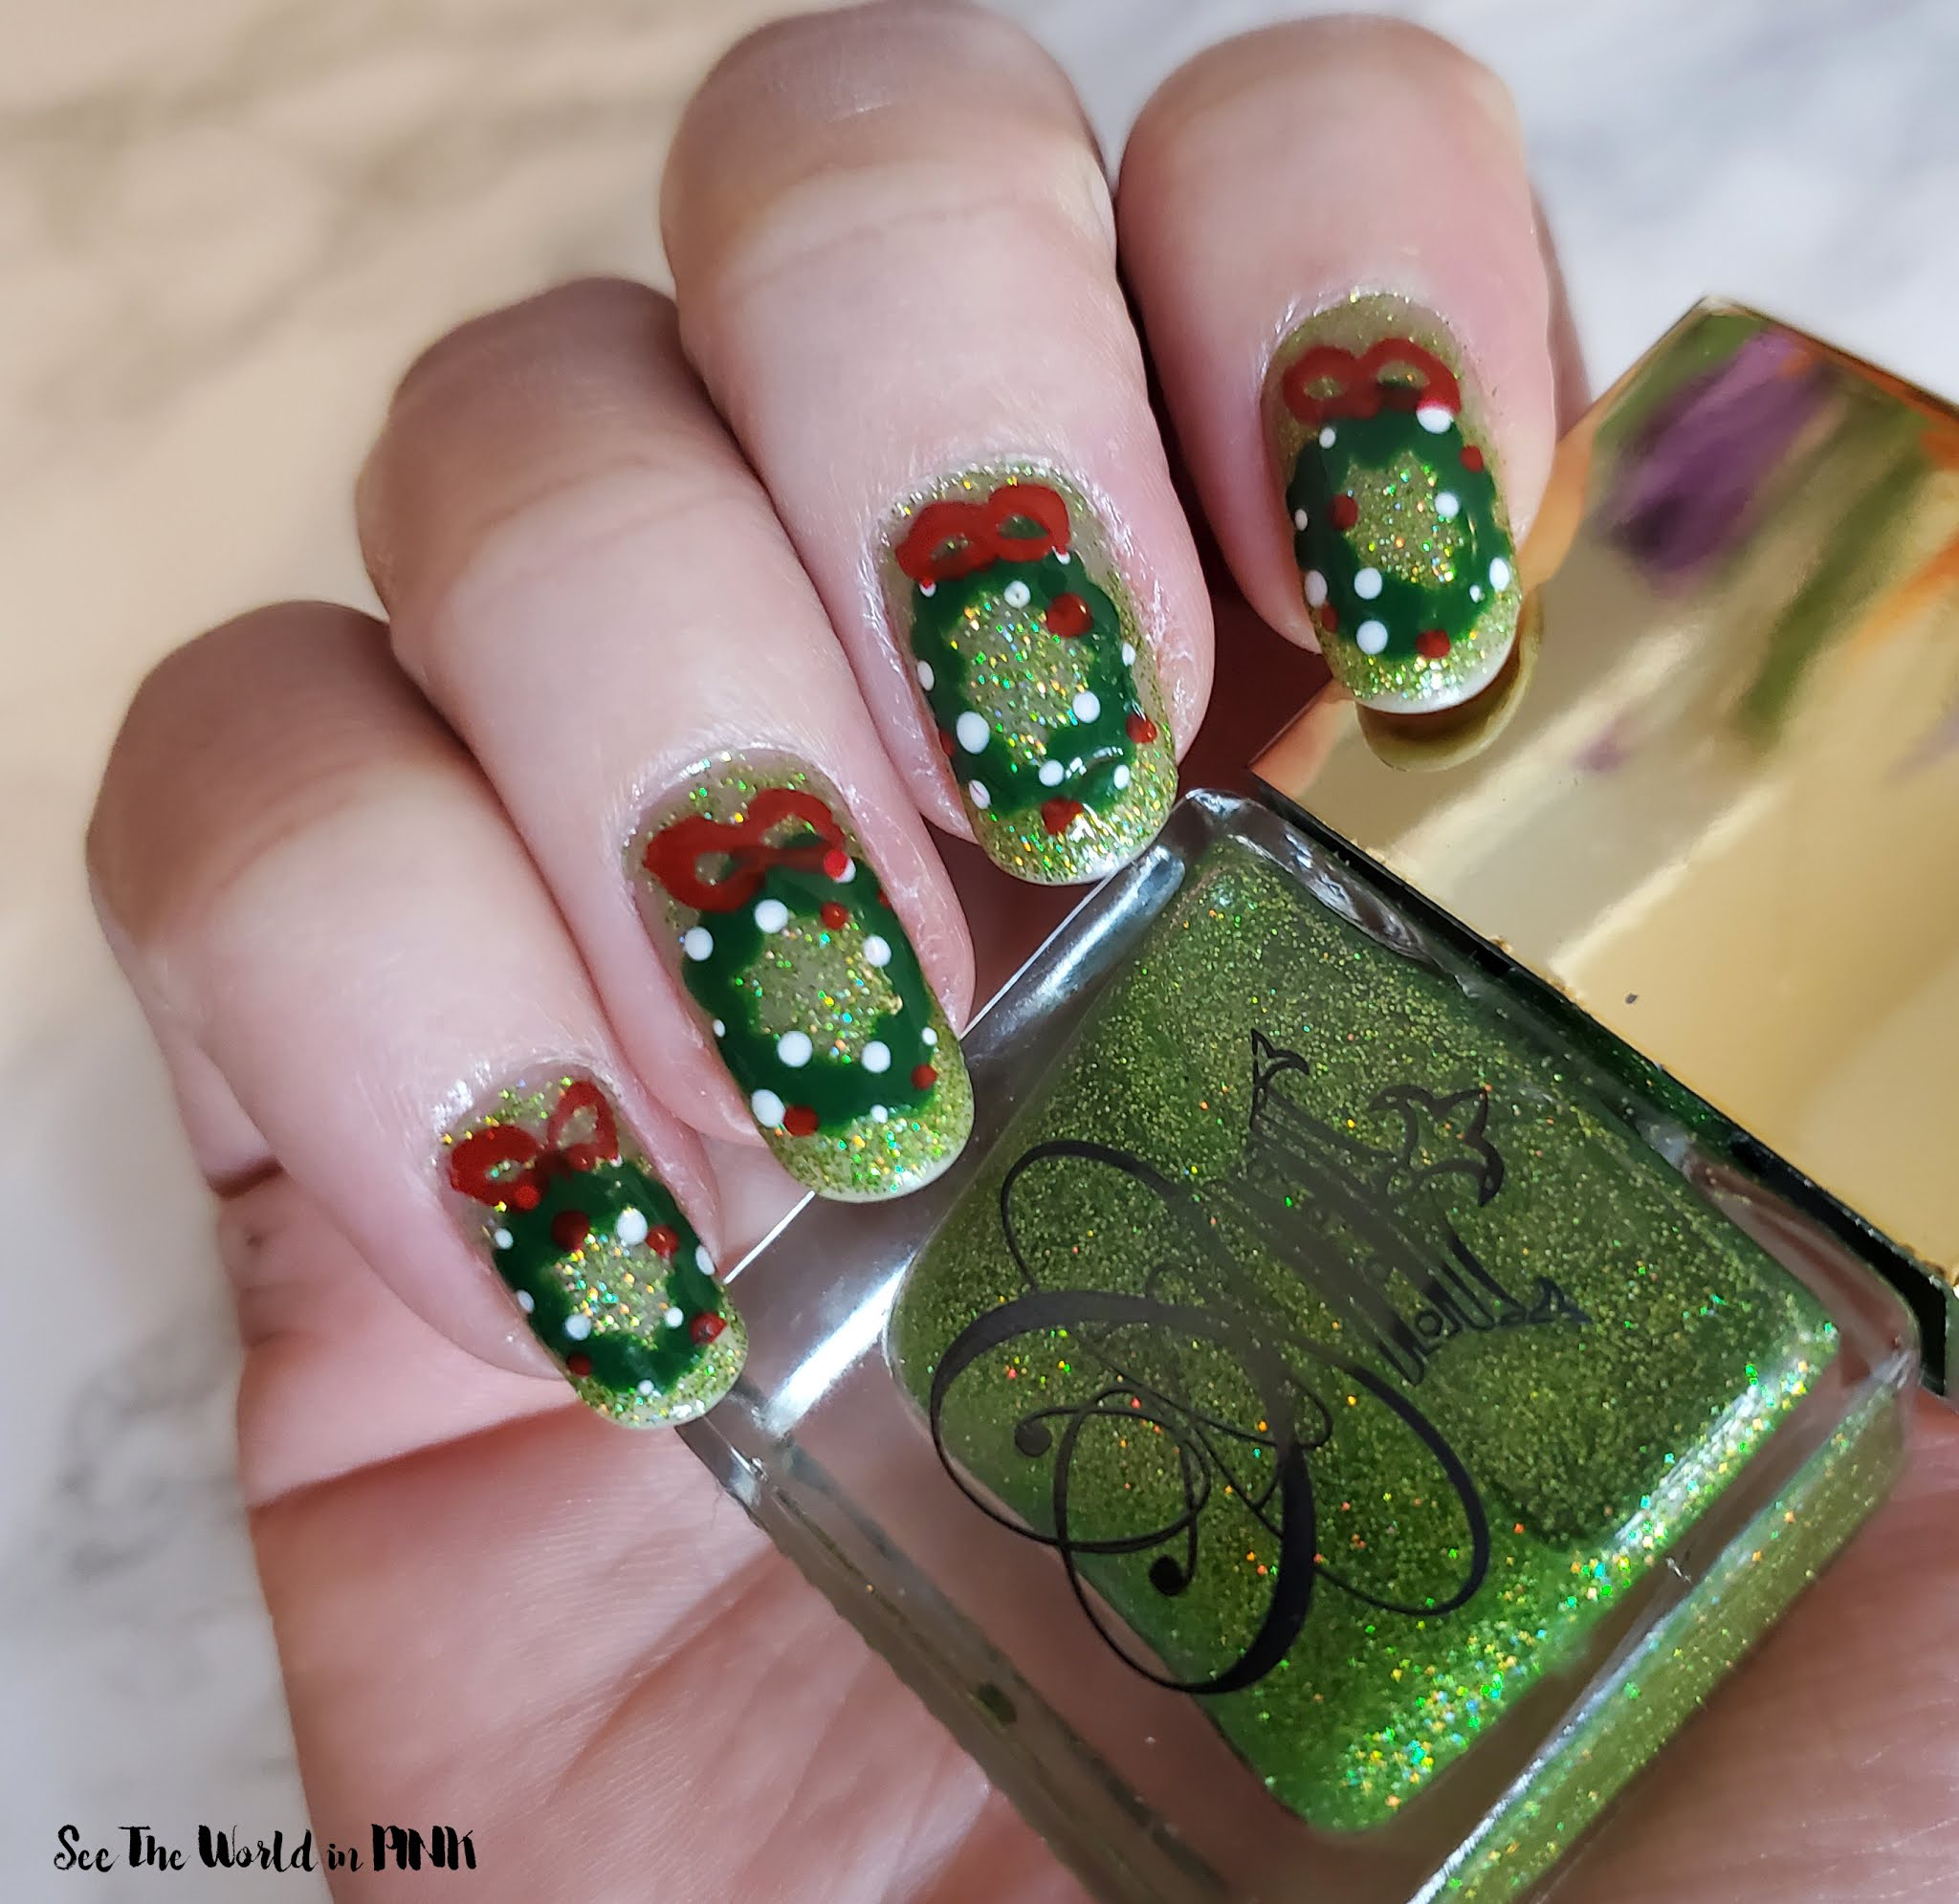 Manicure Monday - Christmas Wreath Nails